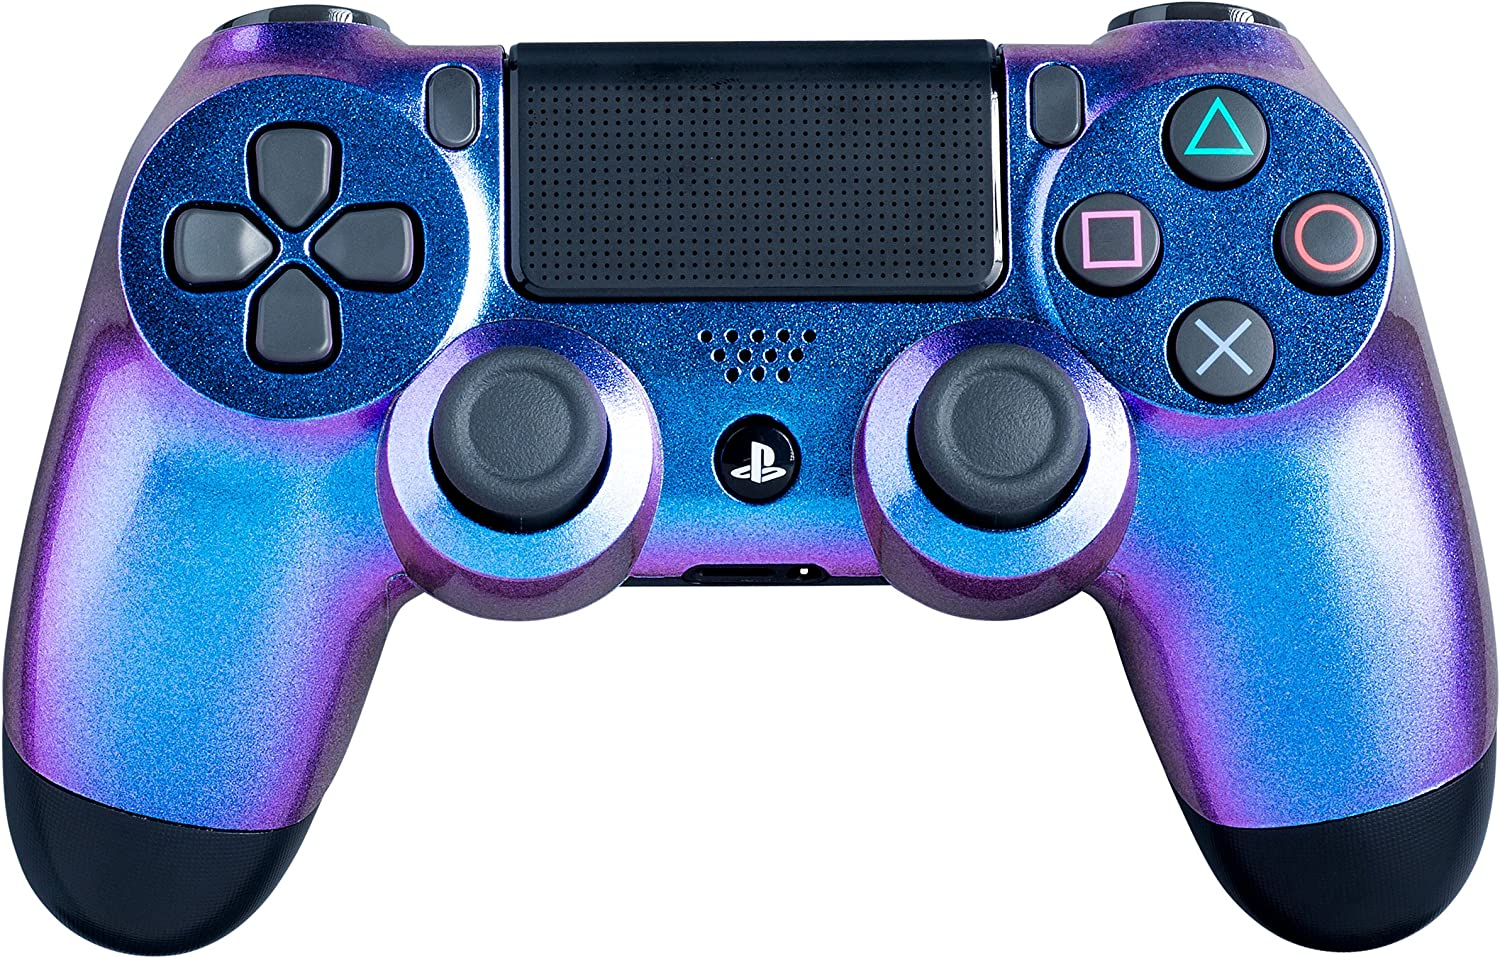 PS4 Modded Controller Chameleon - Playstation 4 - Master Mod Includes Rapid Fire, Drop Shot, Quick Scope, Sniper Breath, and More - Works for All Call of Duty Games